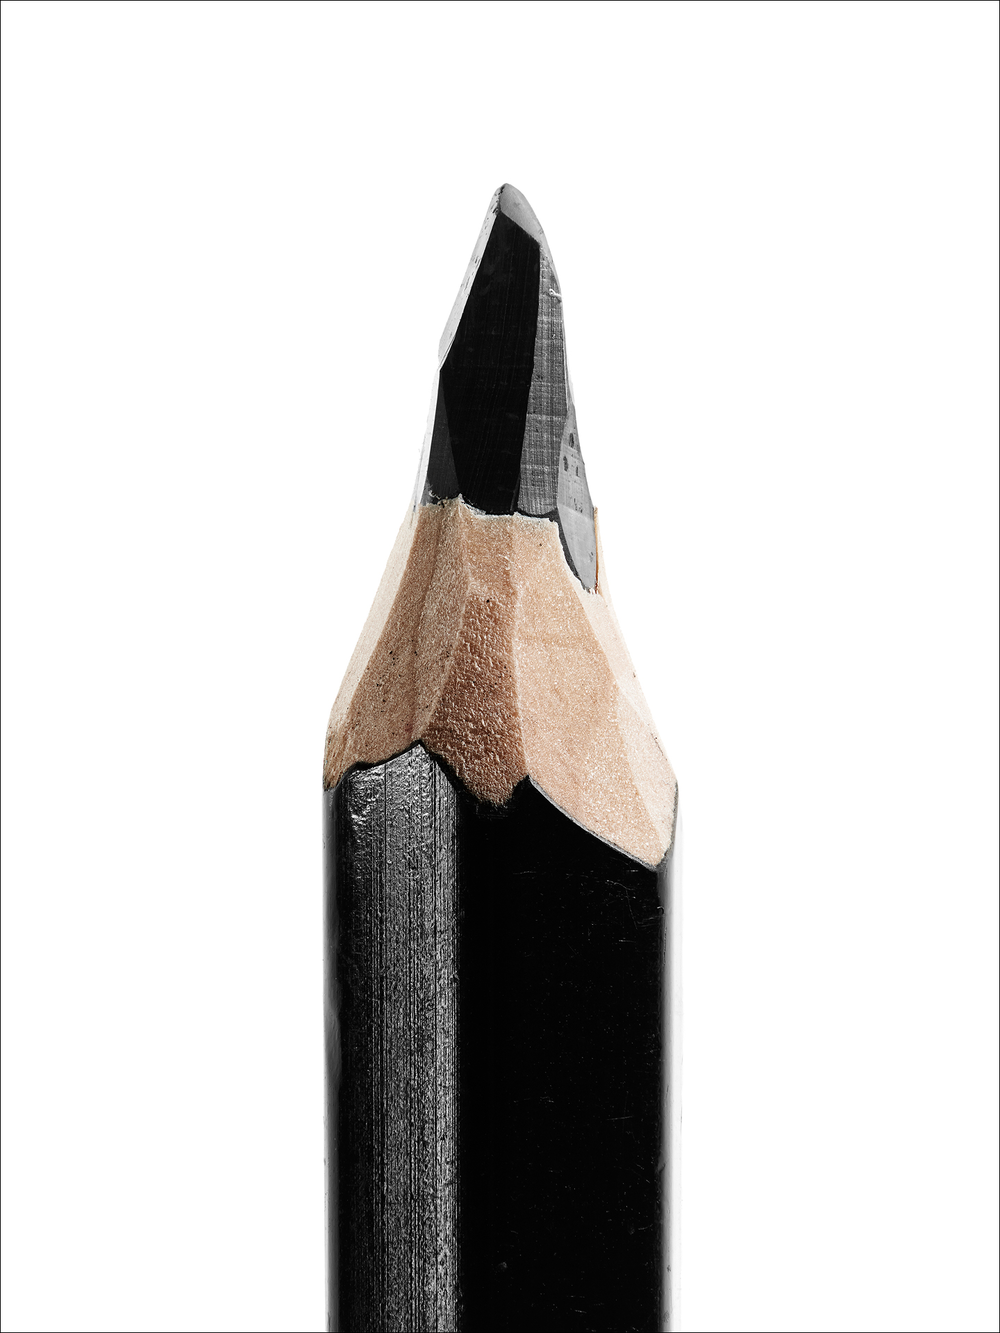 Posy Simmonds' Faber Castell Pencil